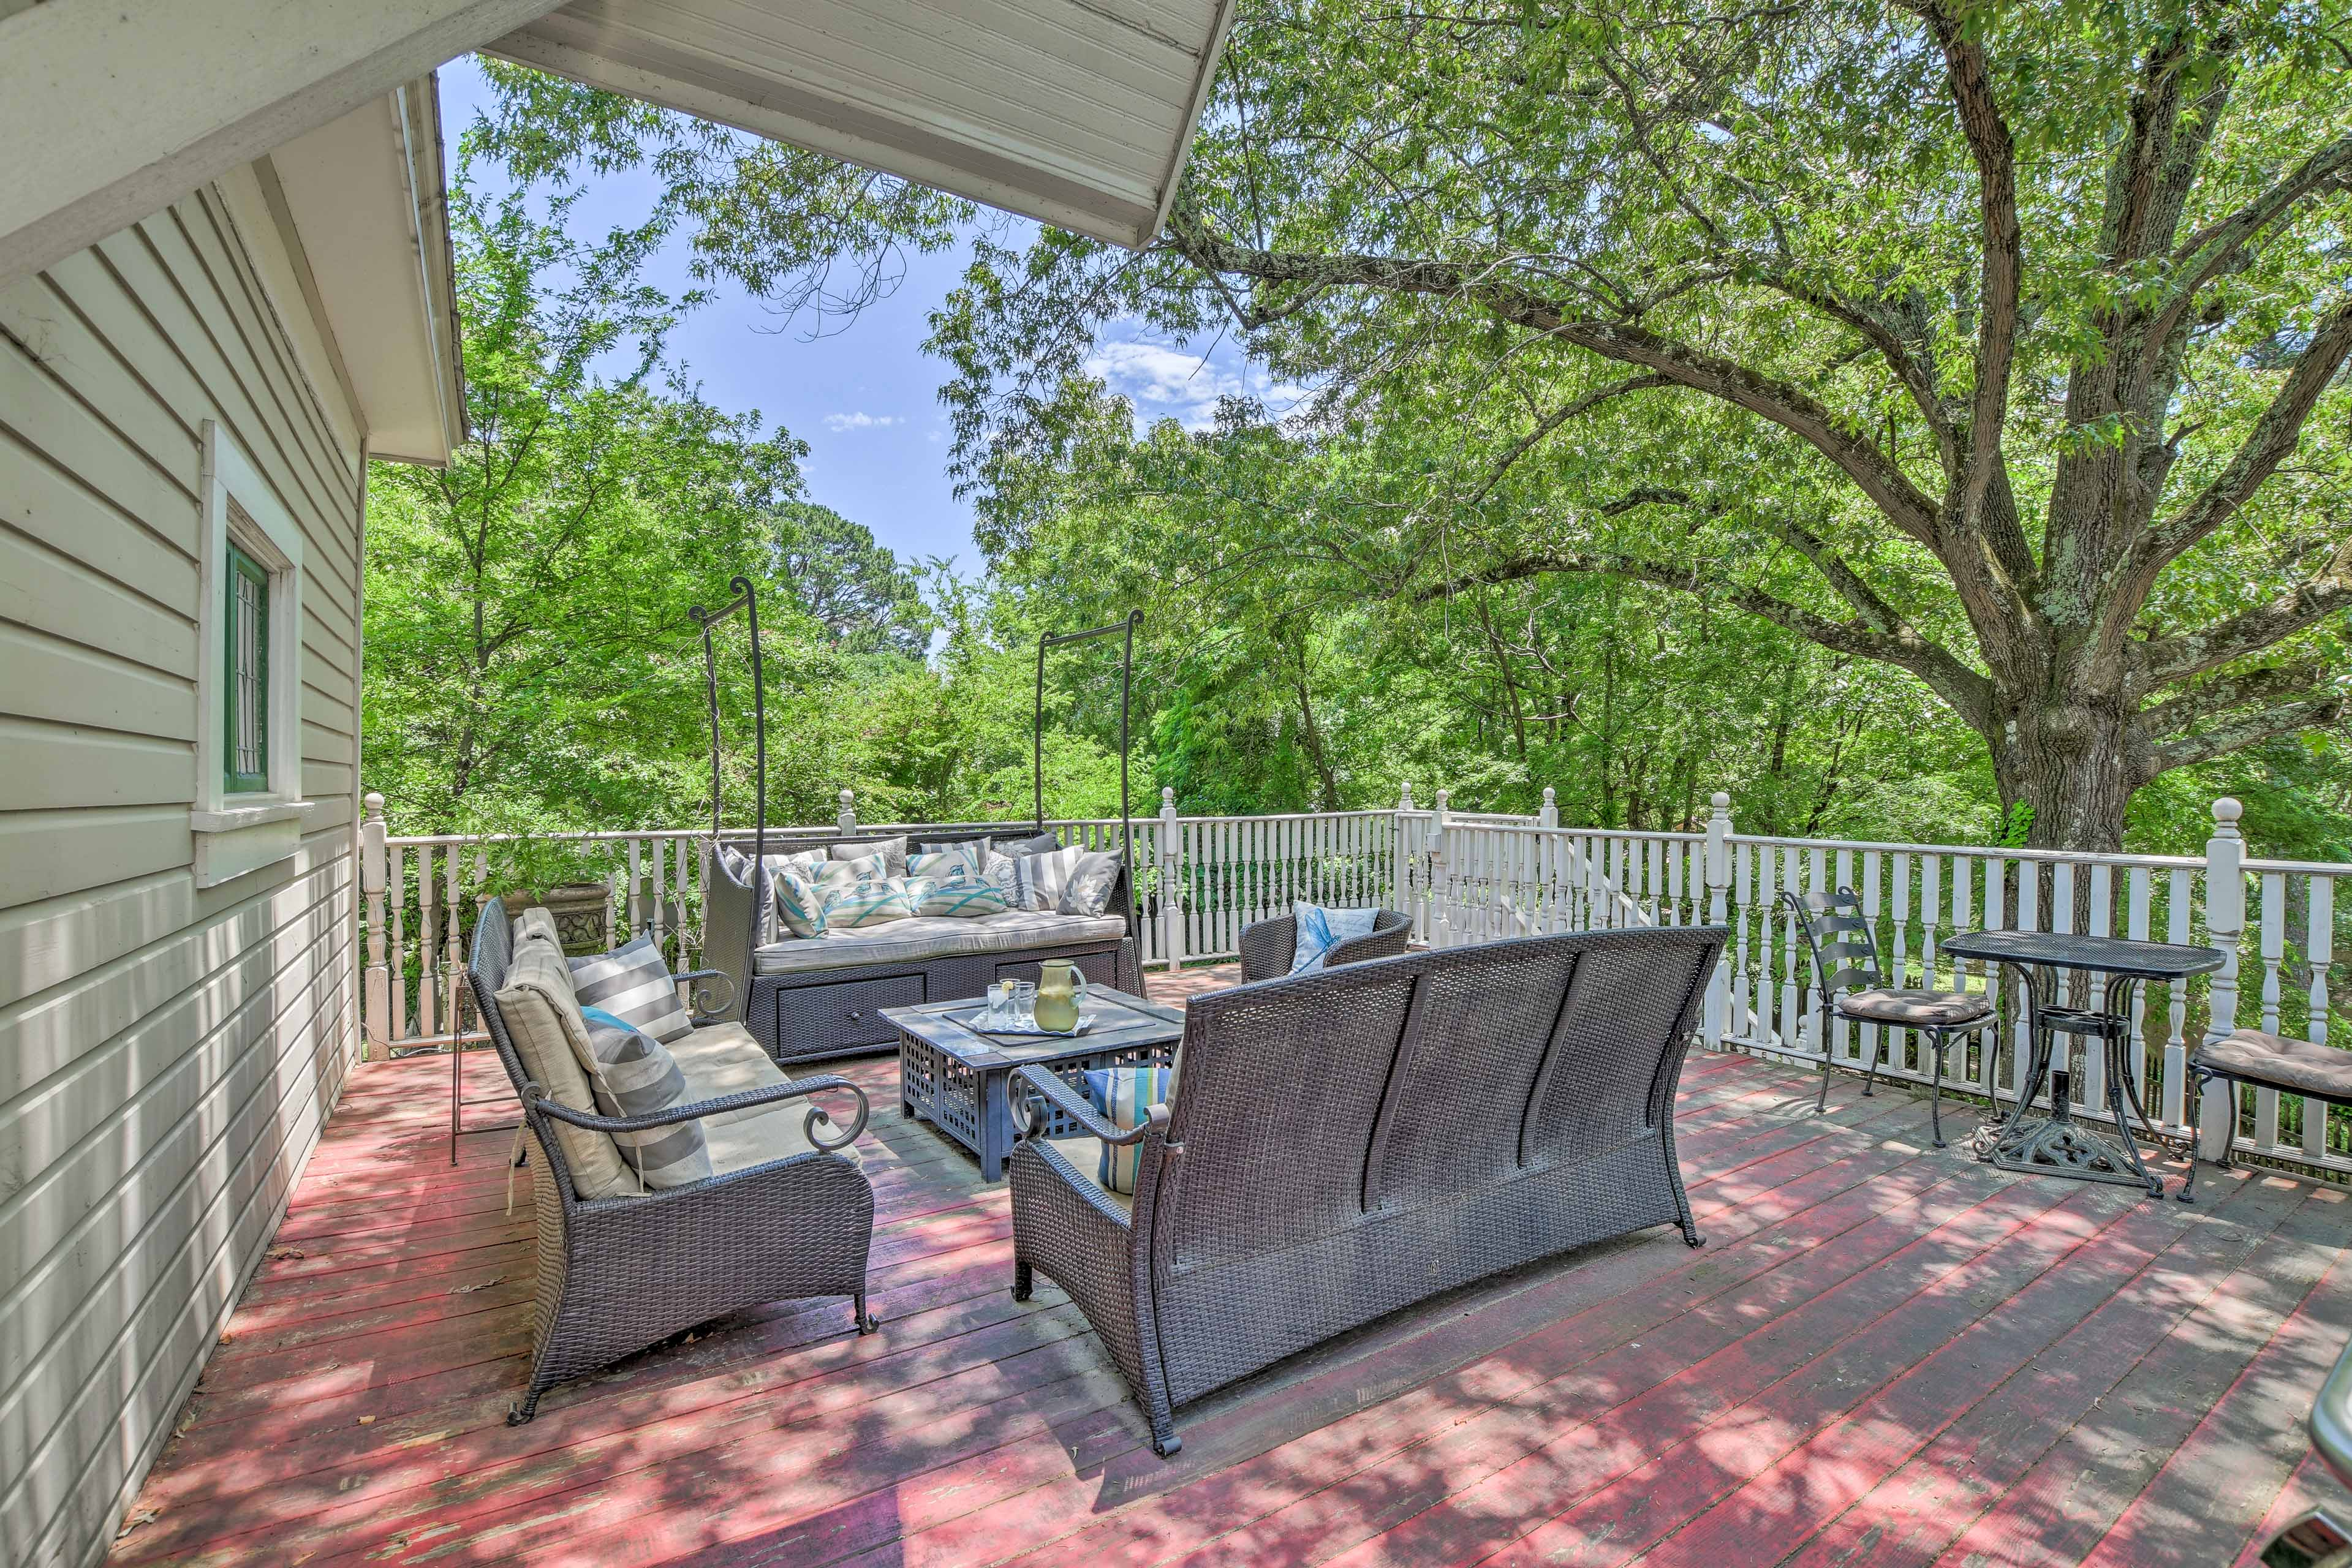 Relax with a fresh lemonade on the 500-square-foot back deck.